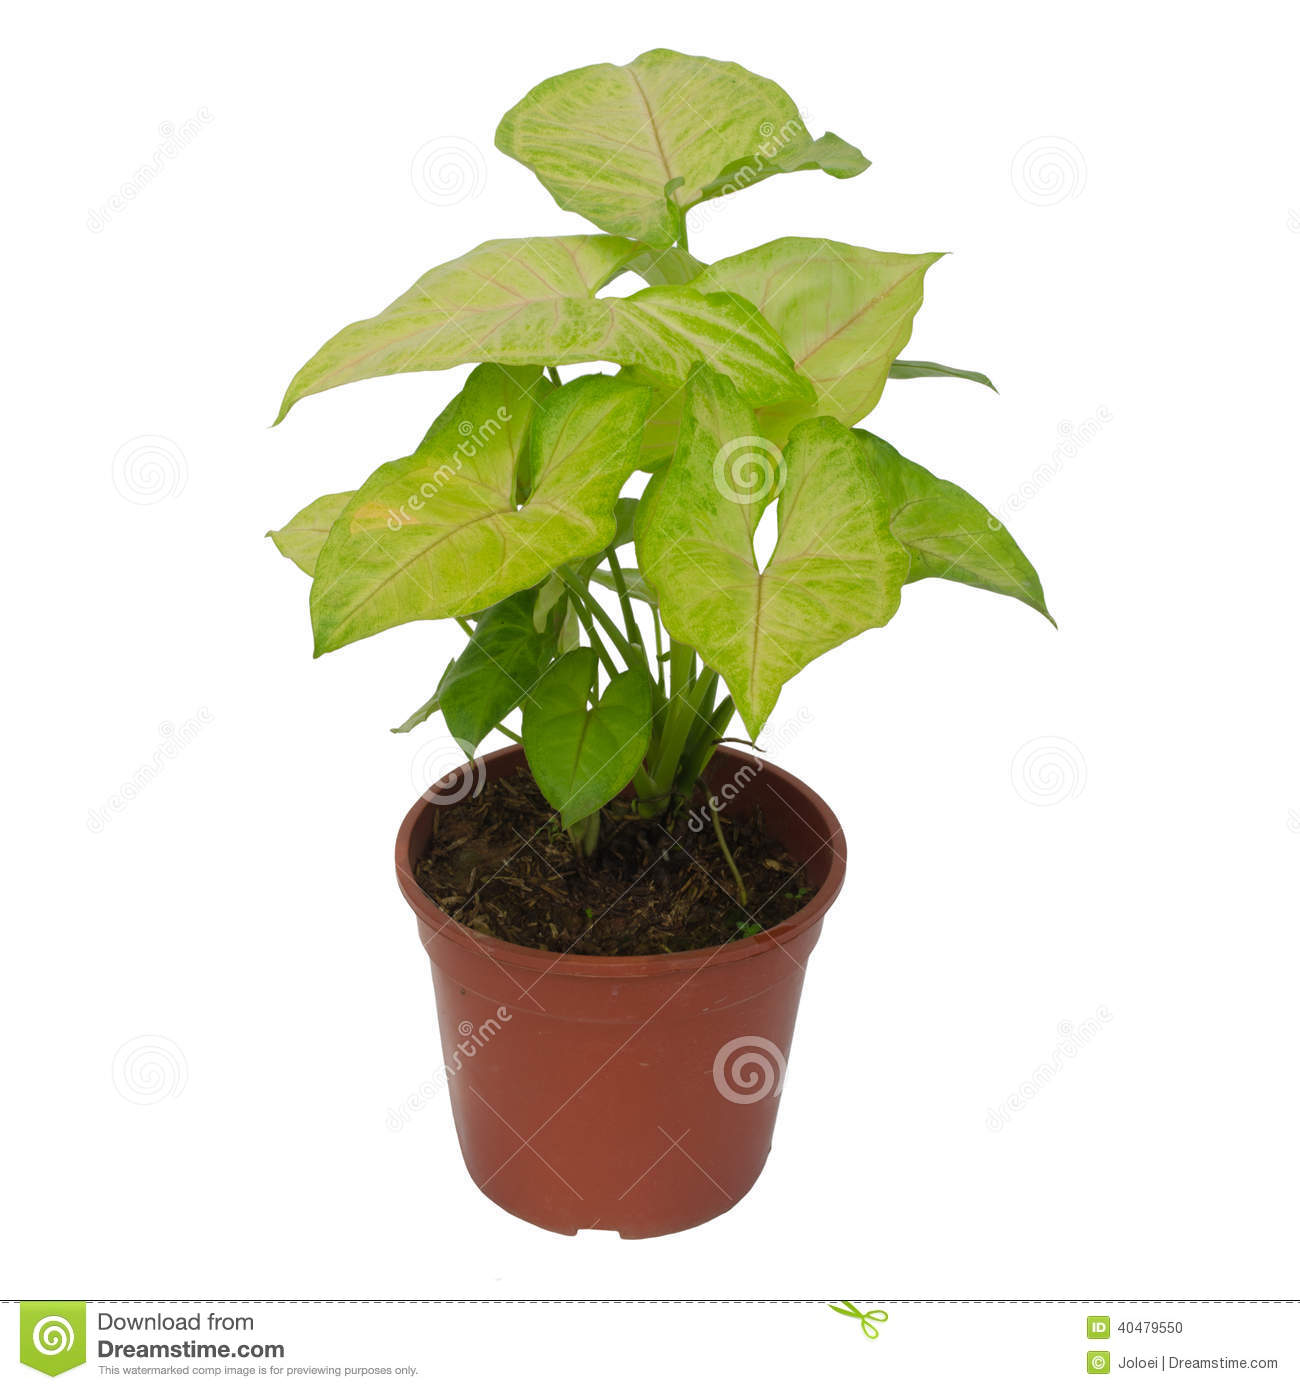 Syngonium de plante d 39 int rieur photo stock image 40479550 for Plante interieur